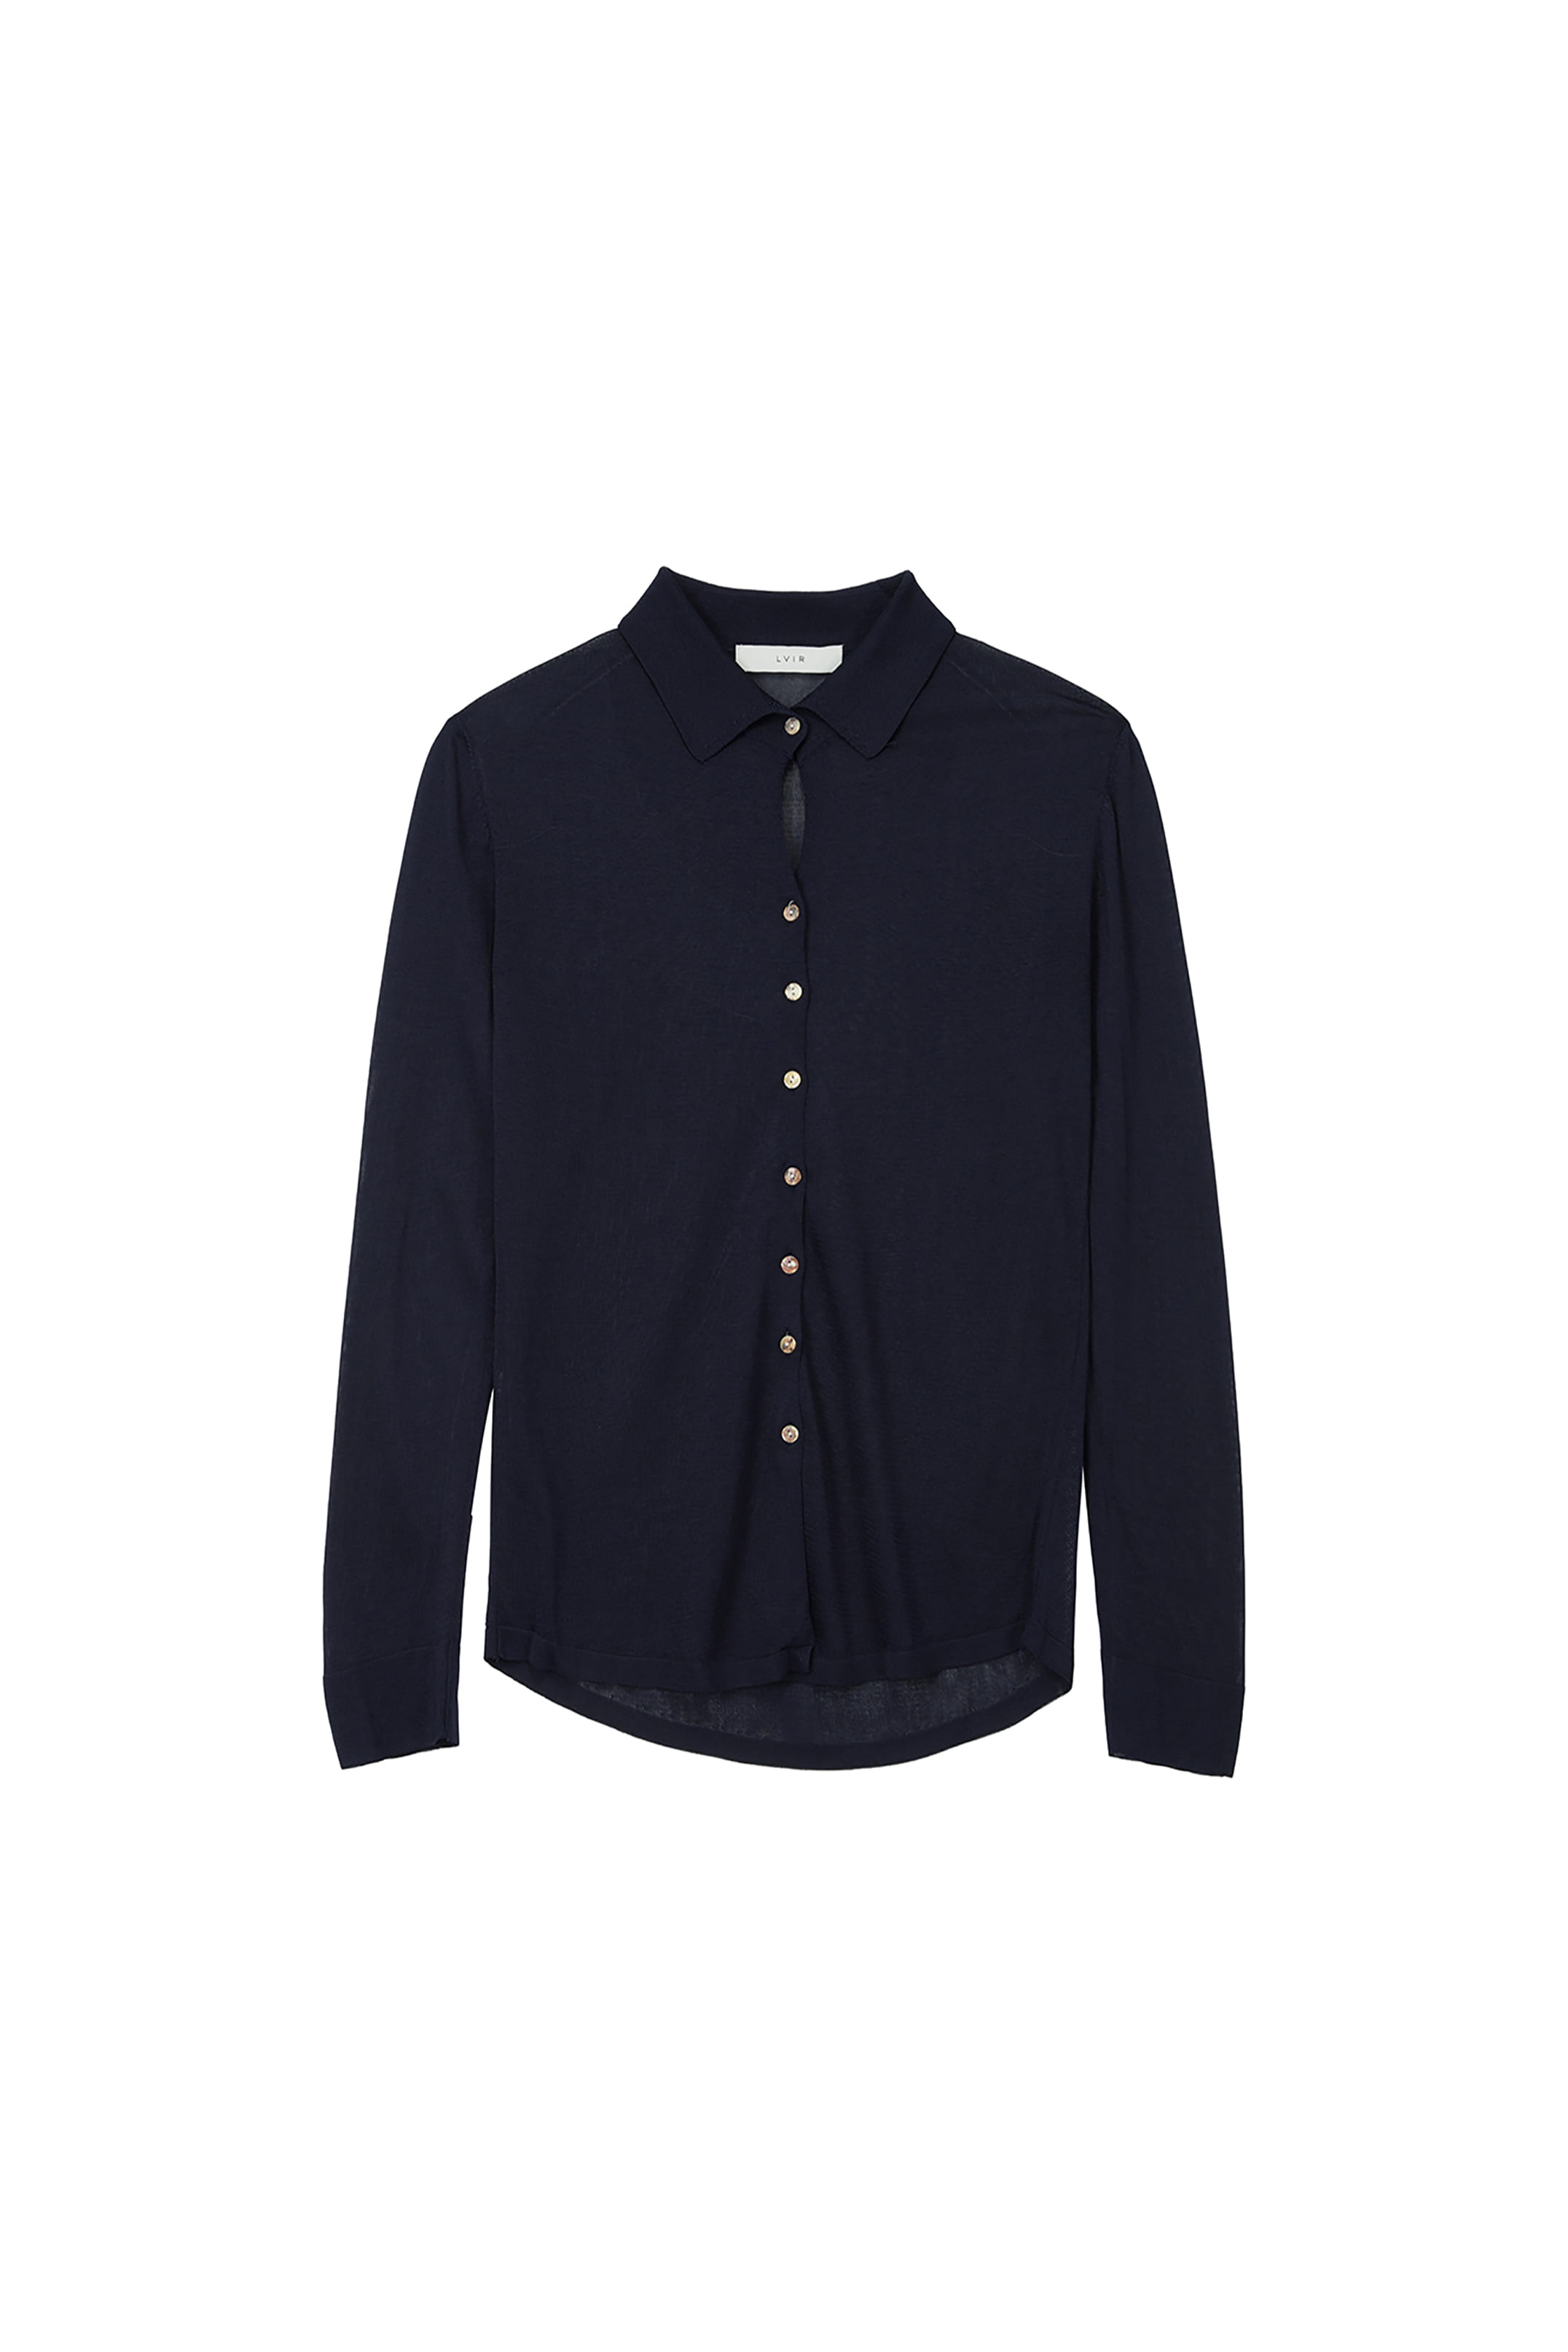 VISCOSE KNIT SHIRTS_NAVY